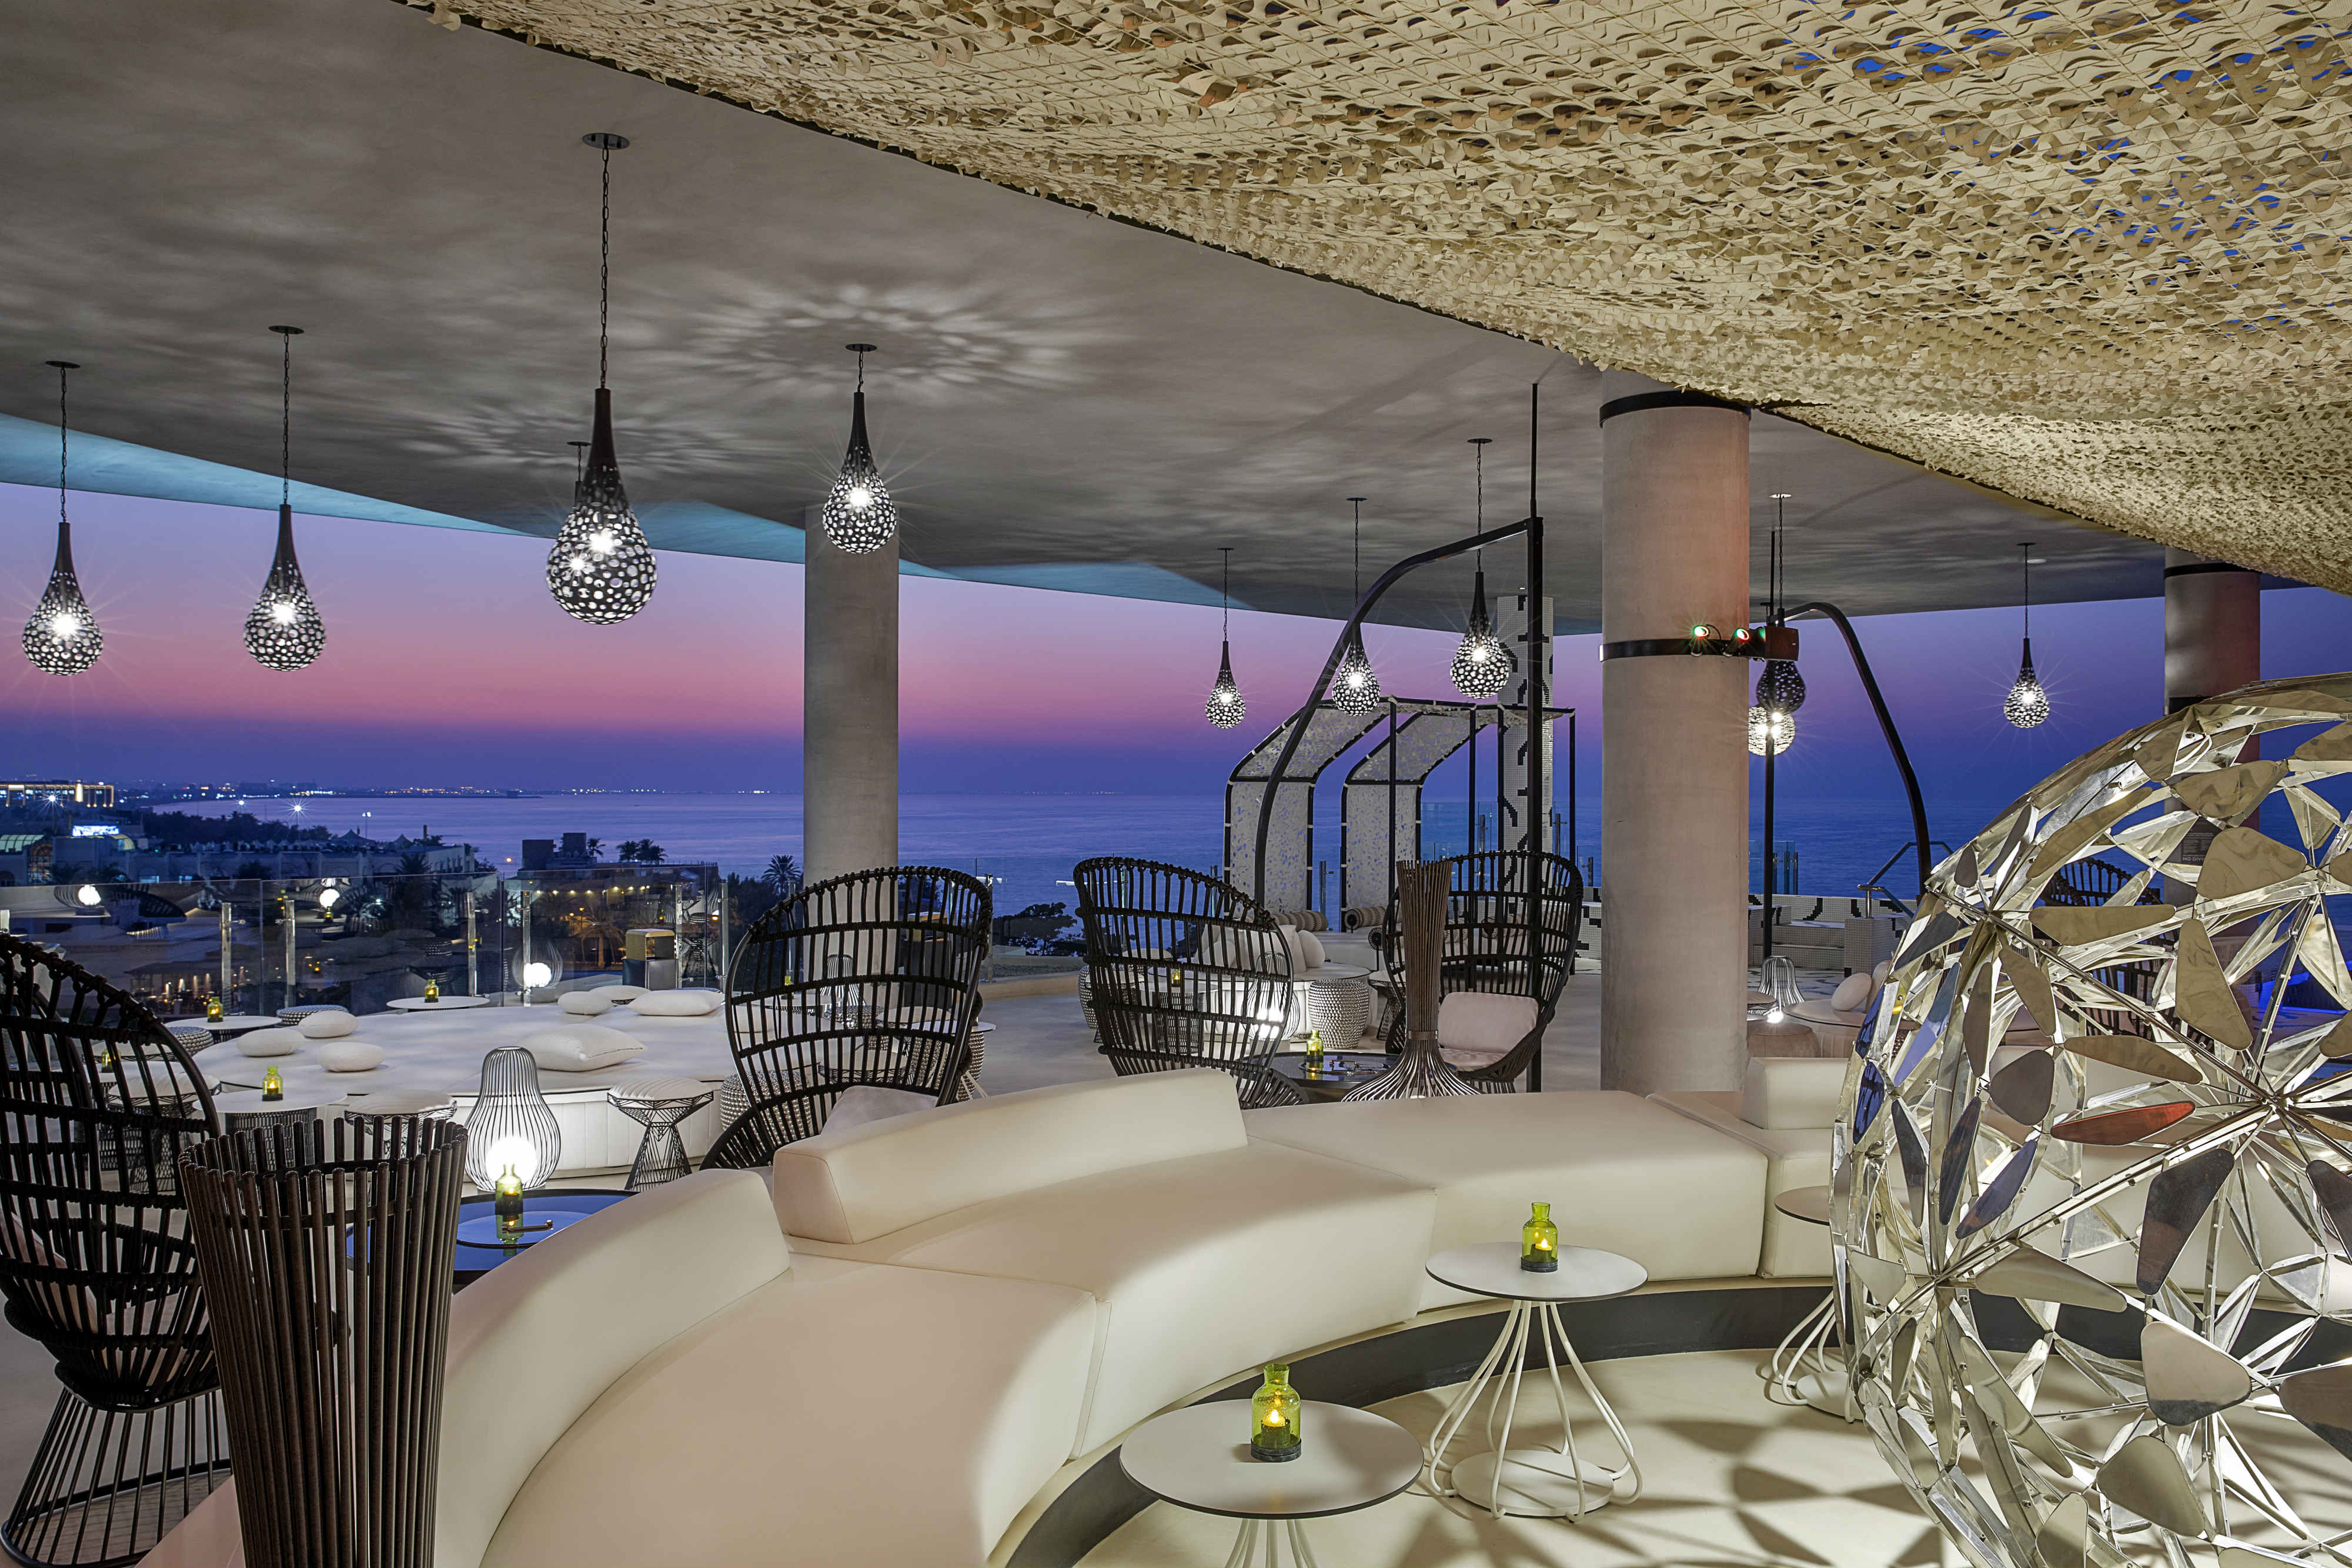 Siddharta Lounge by Buddha-Bar has arrived to W Muscat Hotel, bringing its signature flair for culinary prowess and trendy mixology to their sophisticated rooftop restaurant, lounge and pool bar, overlooking the sweeping coastline of Shatti Al Qurum.